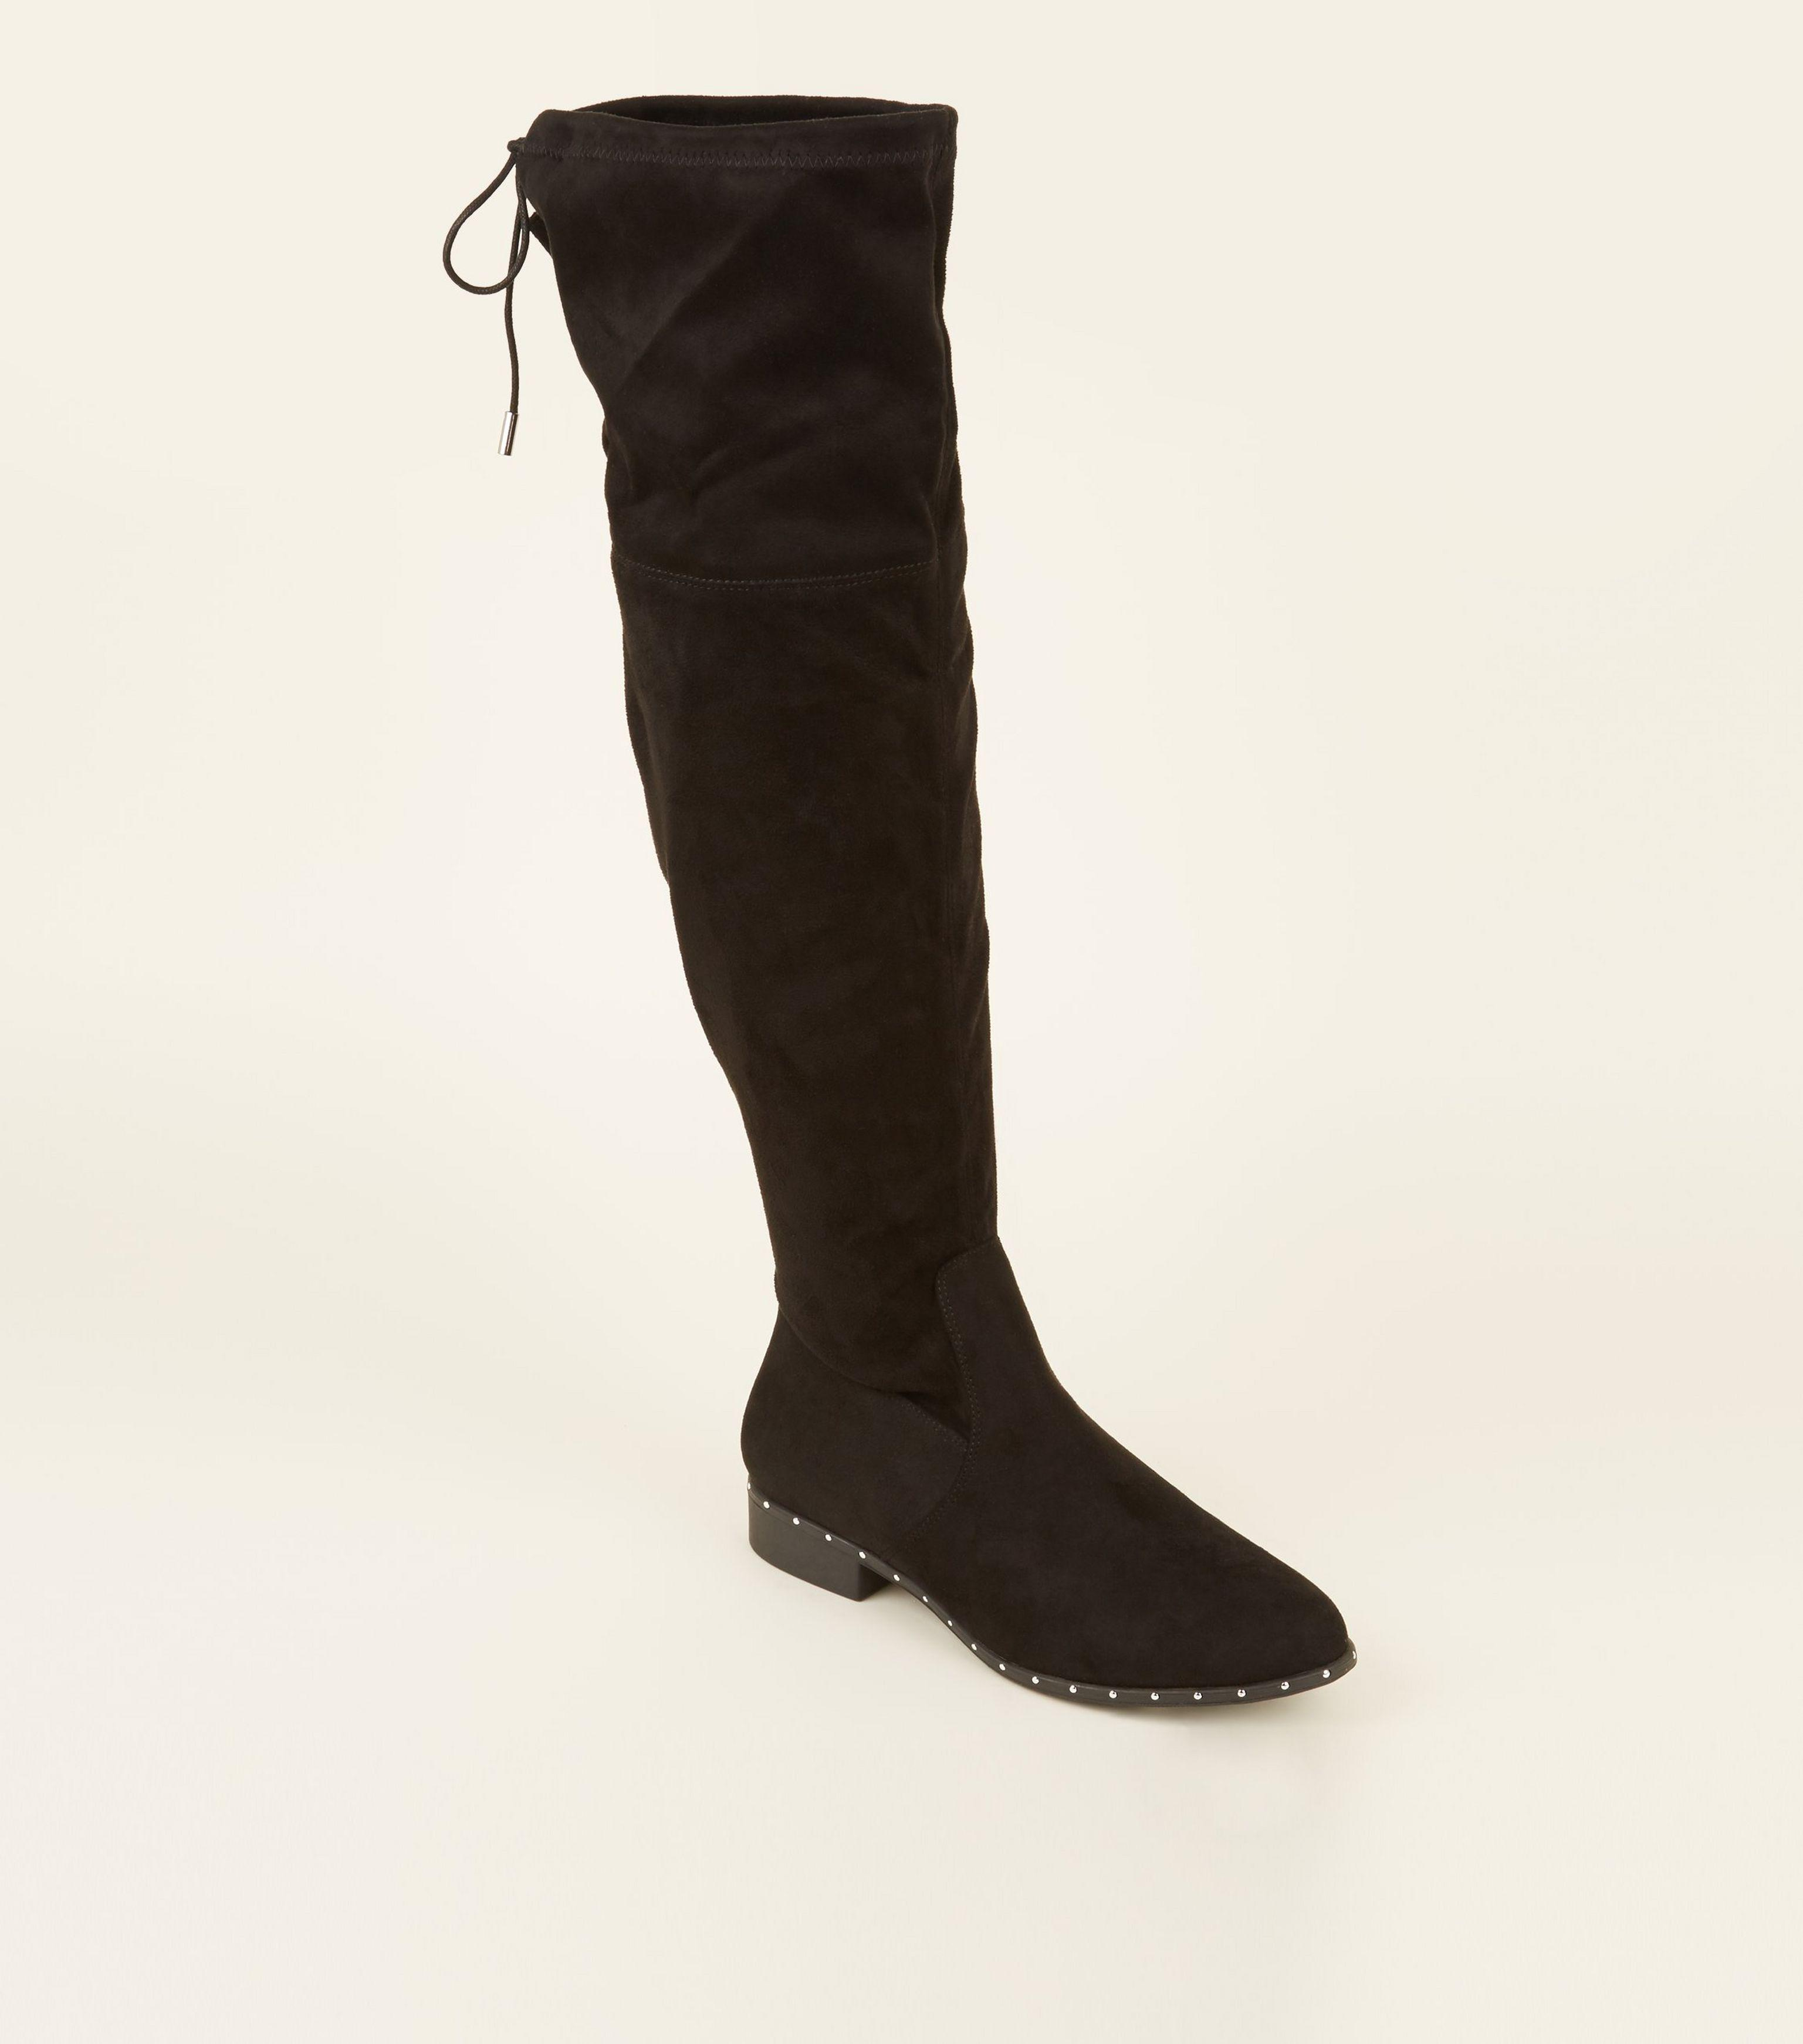 8fde79fcd6c New Look Black Extra Calf Fit Studded Sole Over The Knee Boots in ...